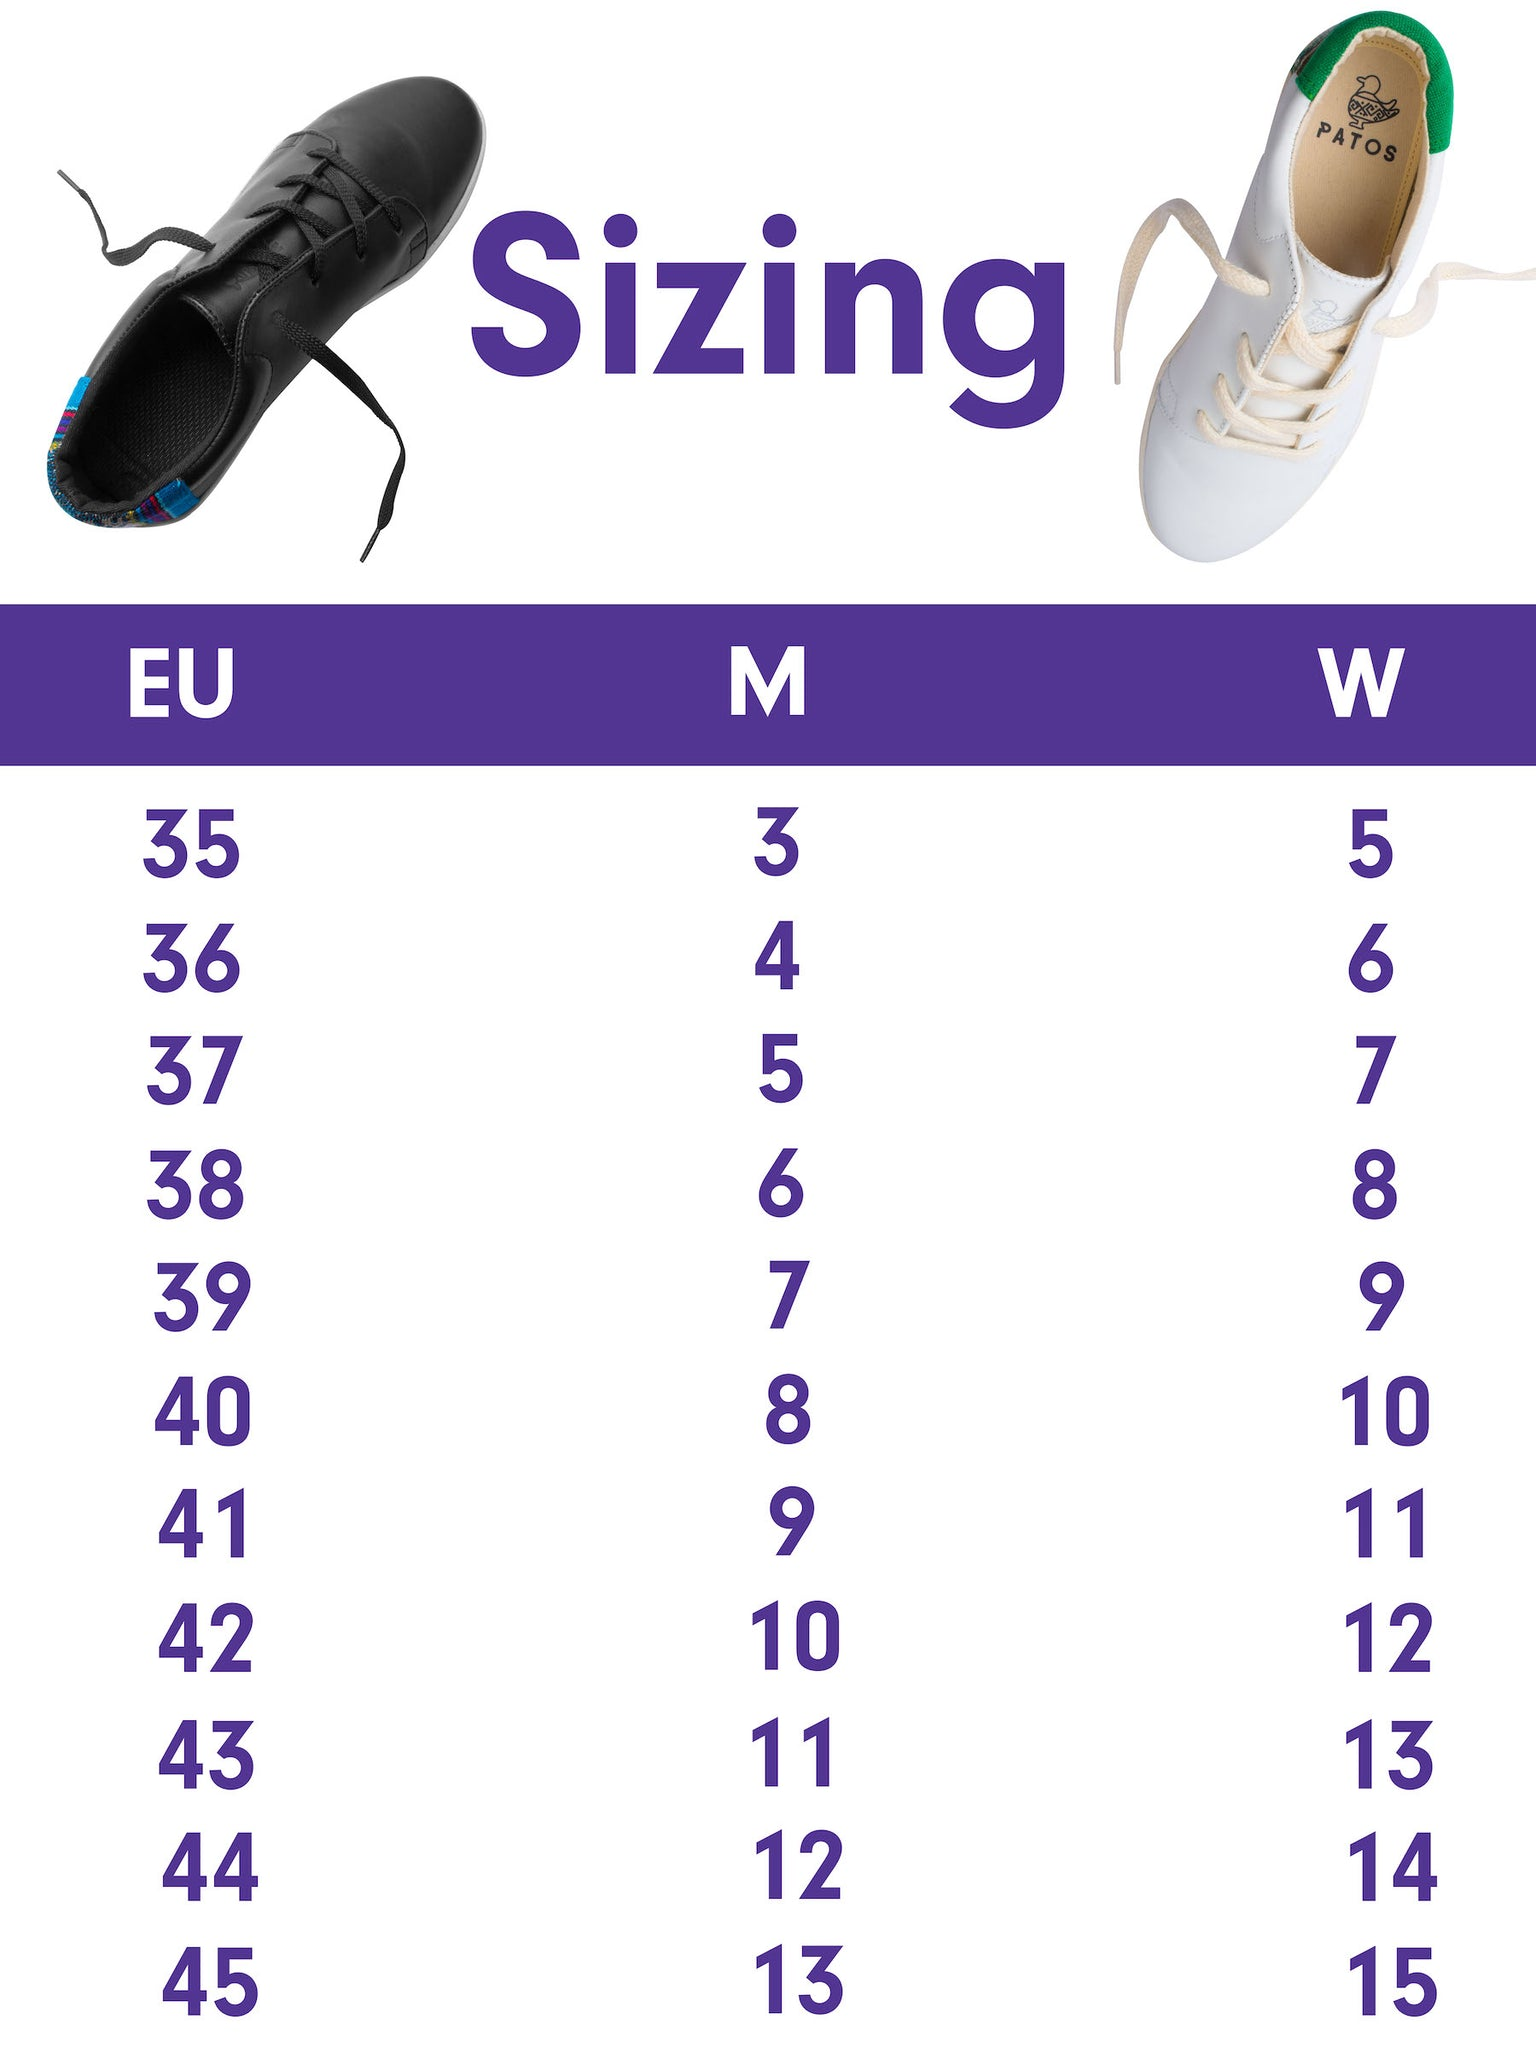 PATOS Shoes sizing chart